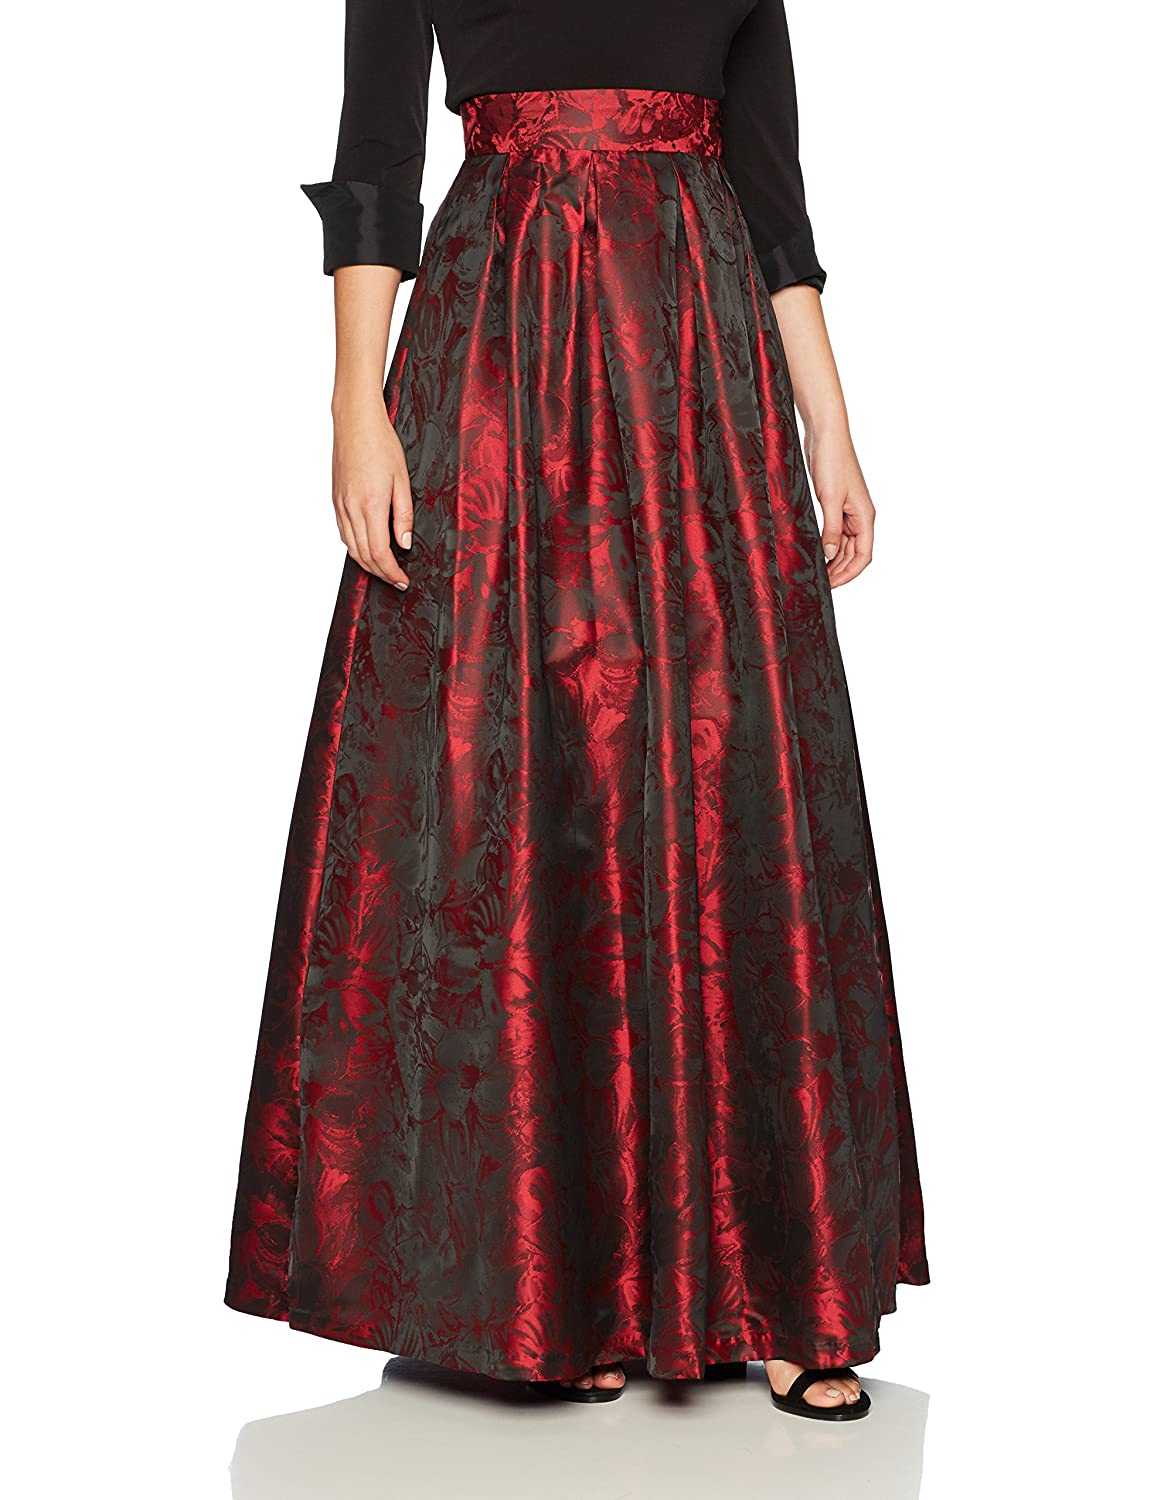 Retro Skirts: Vintage, Pencil, Circle, & Plus Sizes Jessica Howard Womens Separate Ballgown Skirt $138.00 AT vintagedancer.com